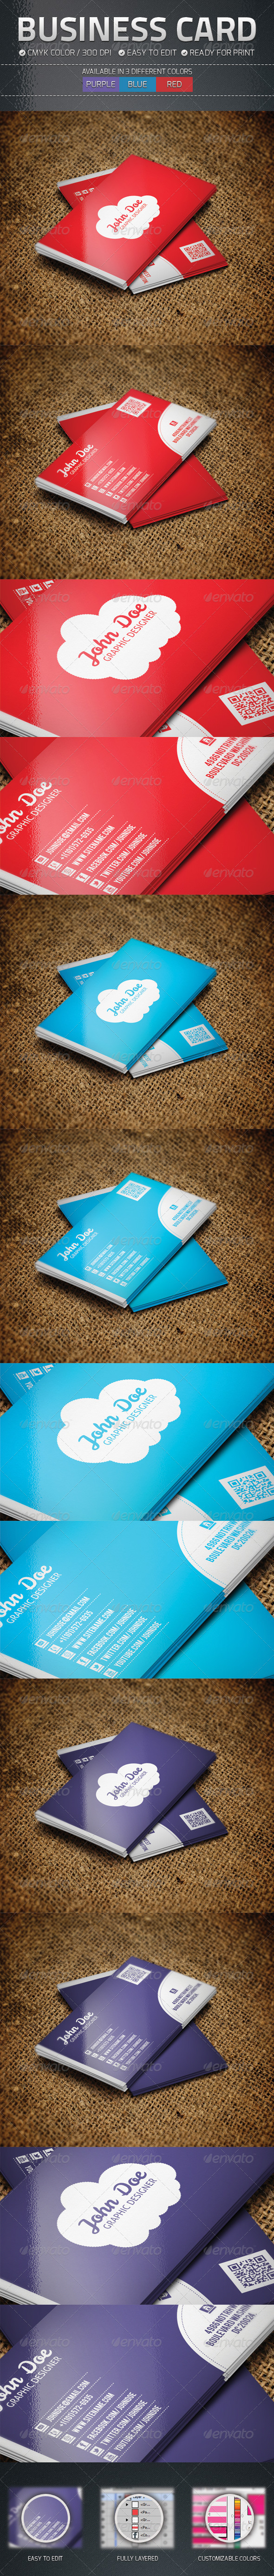 GraphicRiver Business Card 4764333